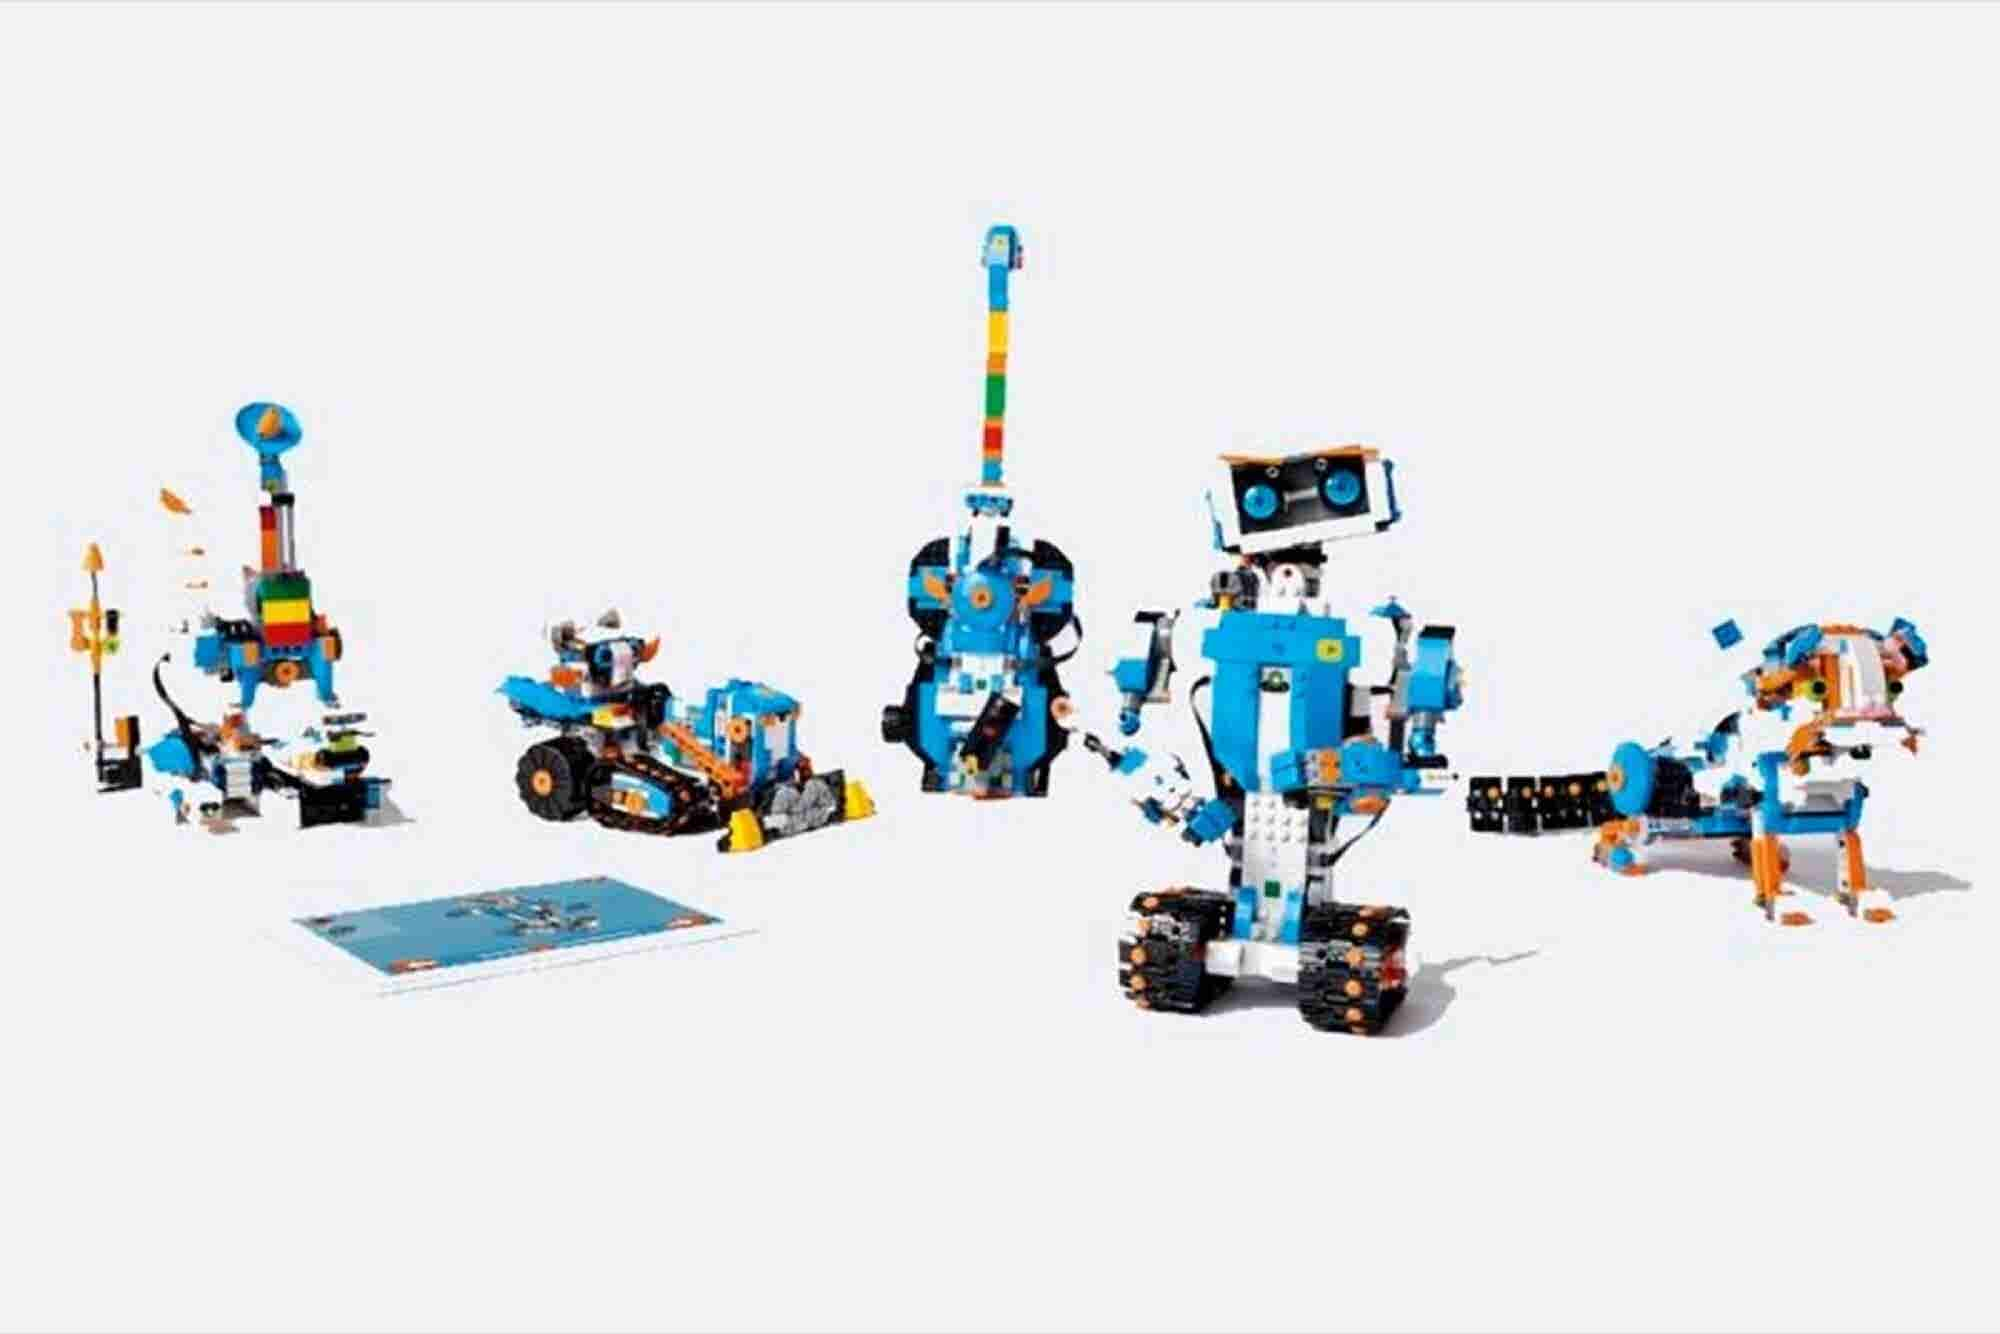 Lego's New Robotics Set Will Teach Your Child How to Code